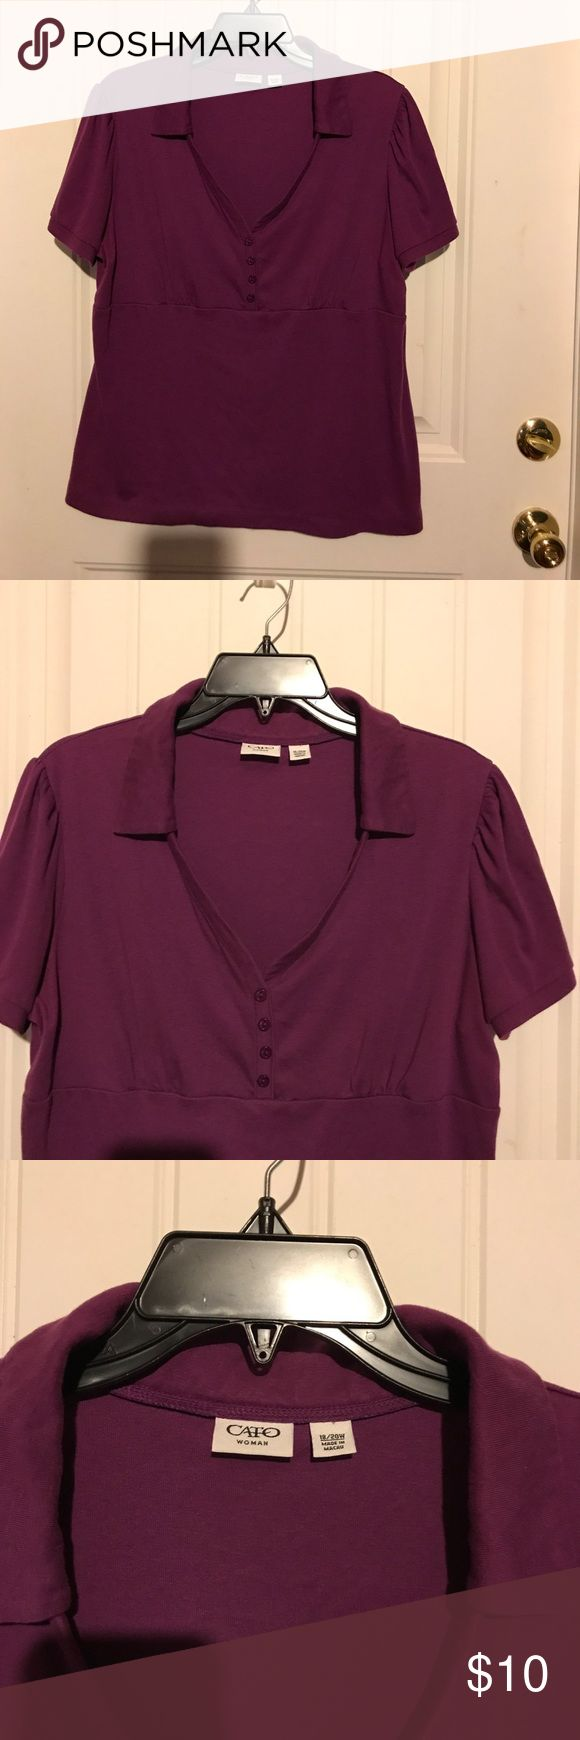 Cato Woman Purple Polo Shirt Empire Waist 18/20W Cato Woman Purple Polo like Shirt is size 18/20W. If you're busty this may not fit you. The Empire Waist went up on me higher than it should have. I like the v-neck, collar and 4 decorative buttons. Short sleeves top was made in Macau of 60% cotton 40% polyester. Cato Tops Tees - Short Sleeve